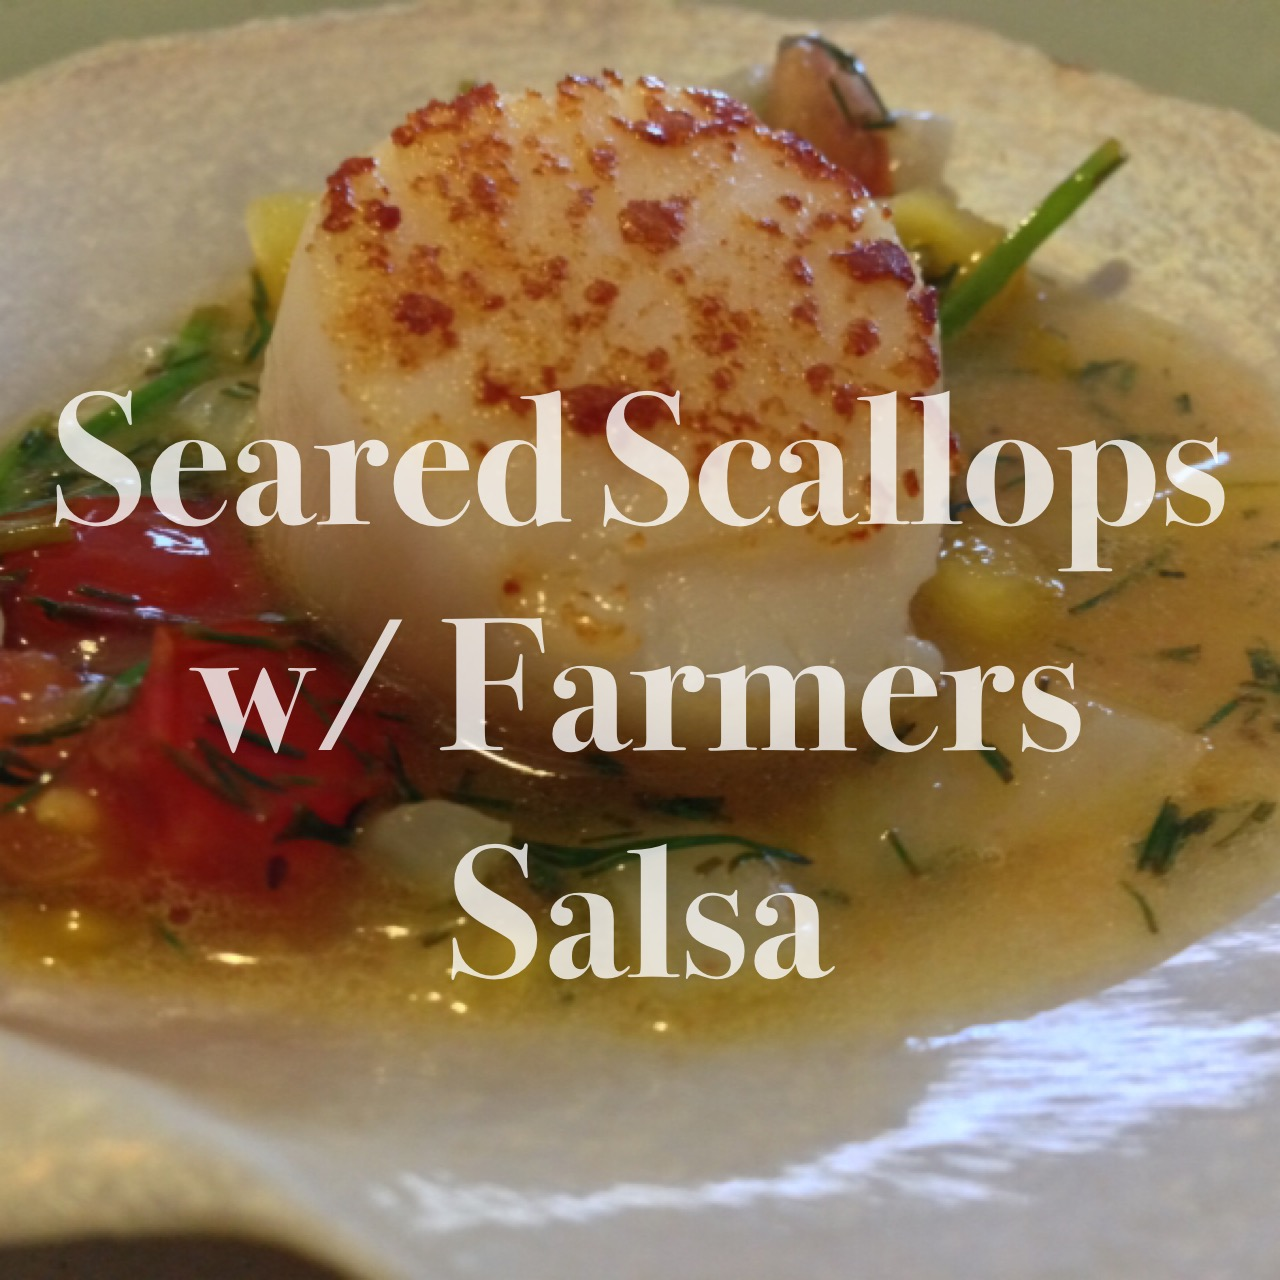 Seared Sea Scallops with Farmer's Salsa recipe